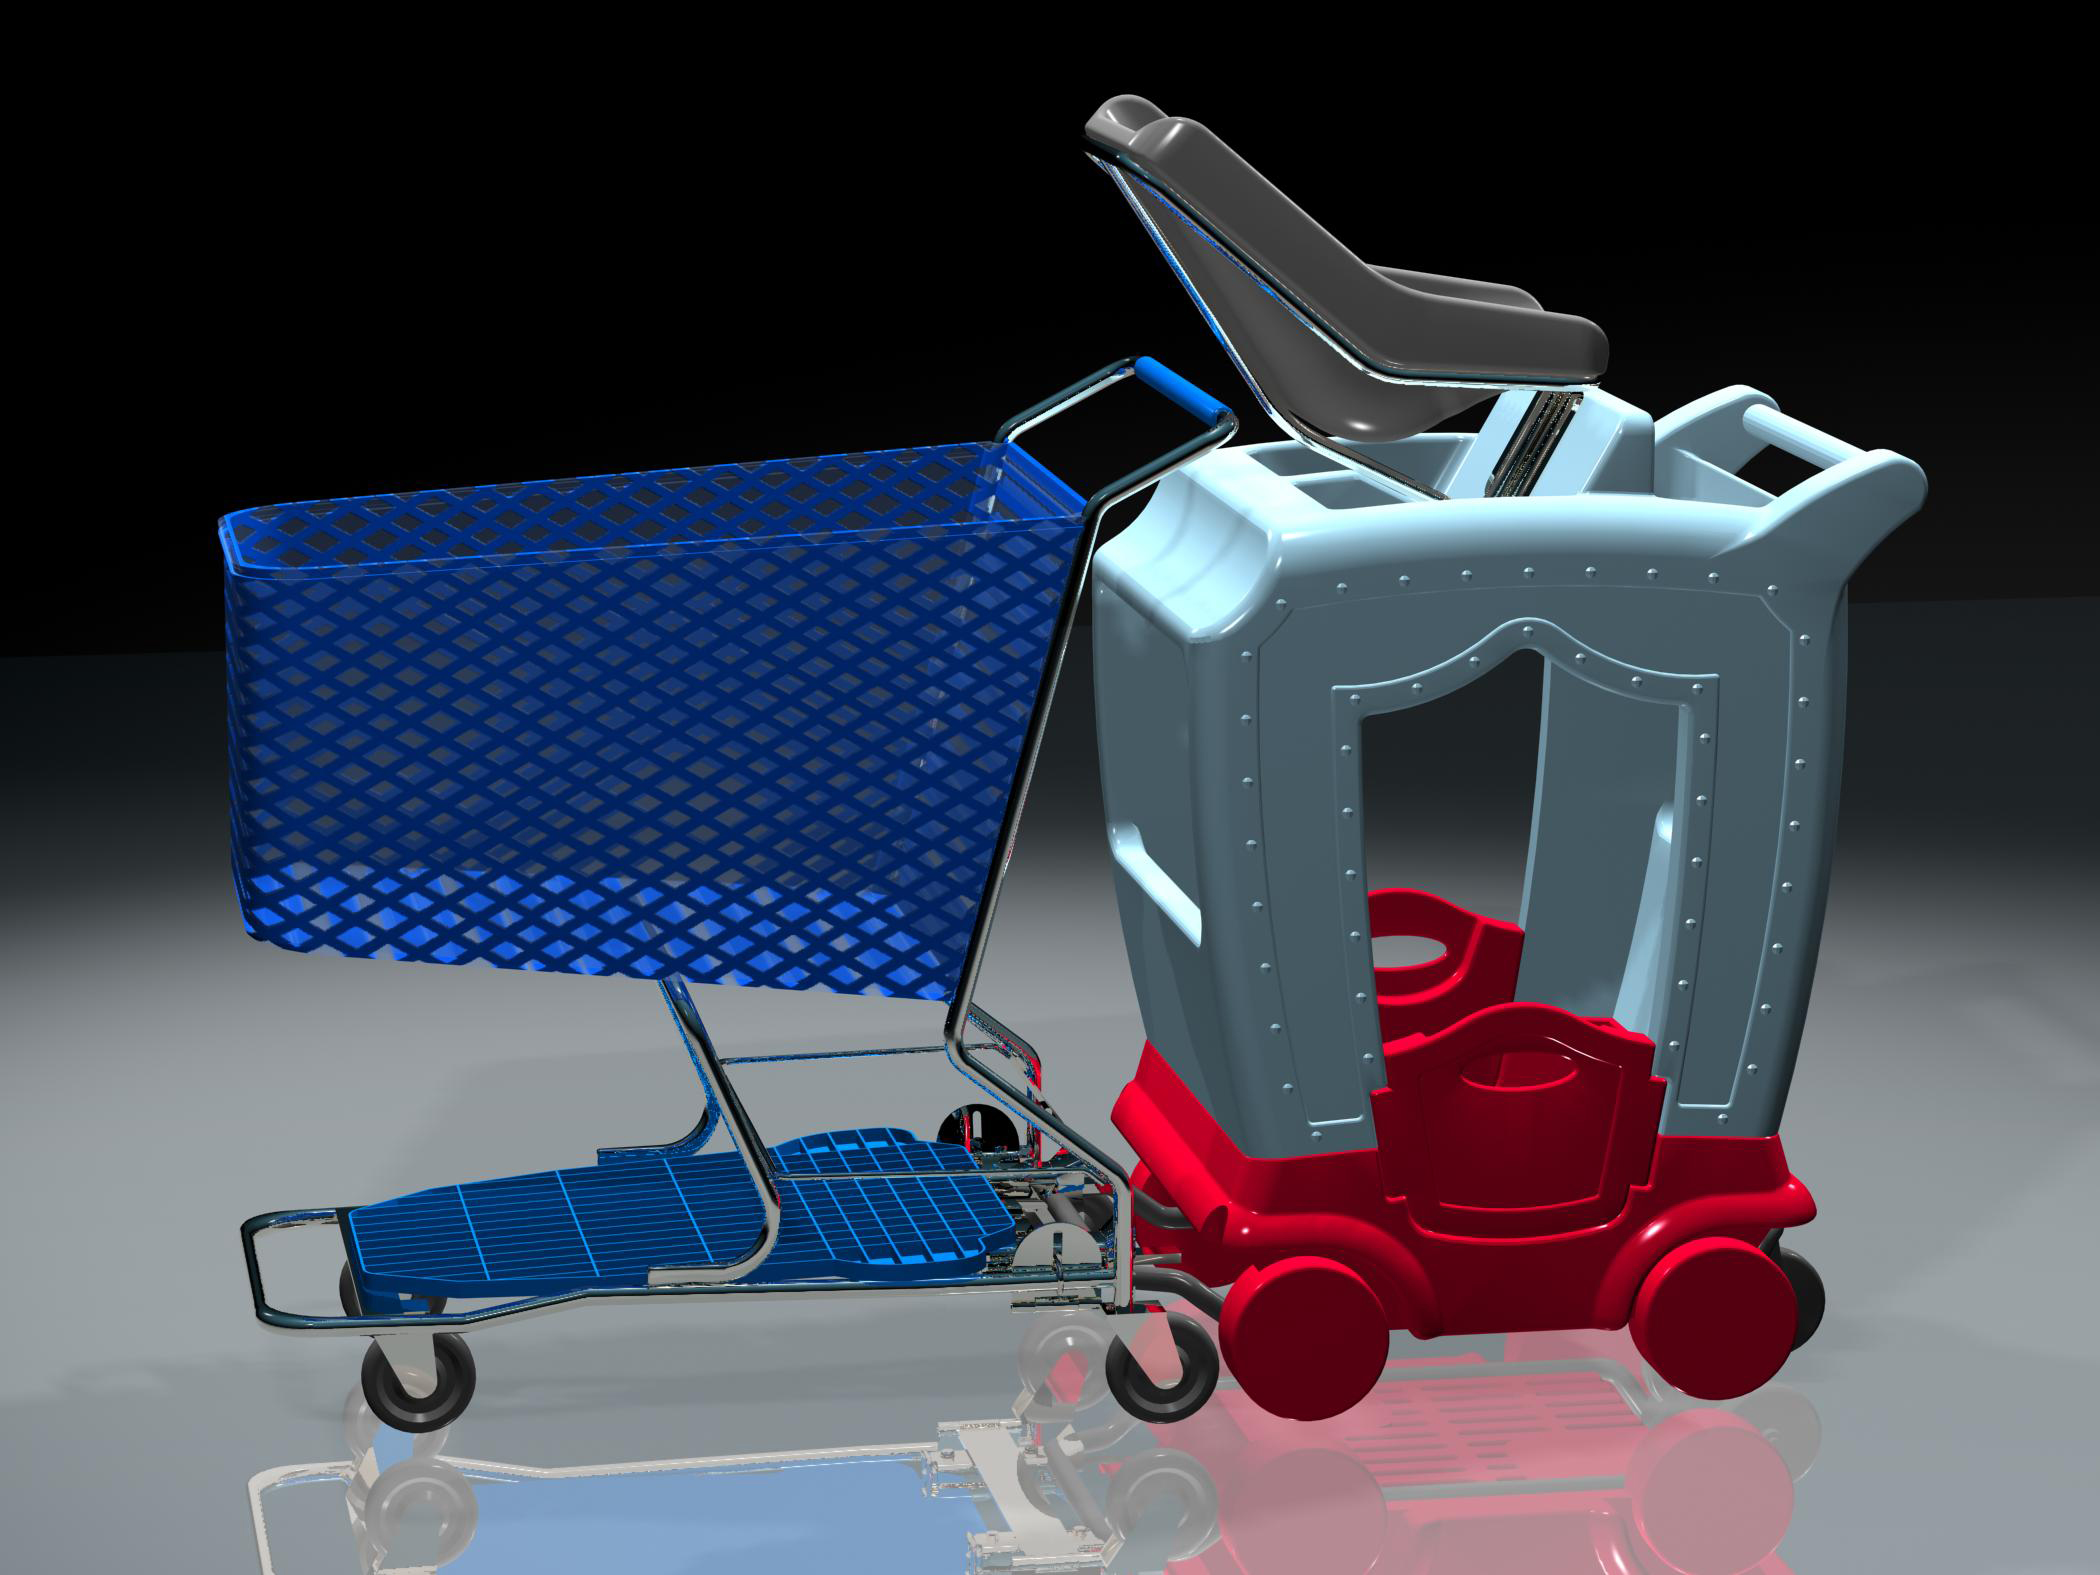 New retail shopping cart design